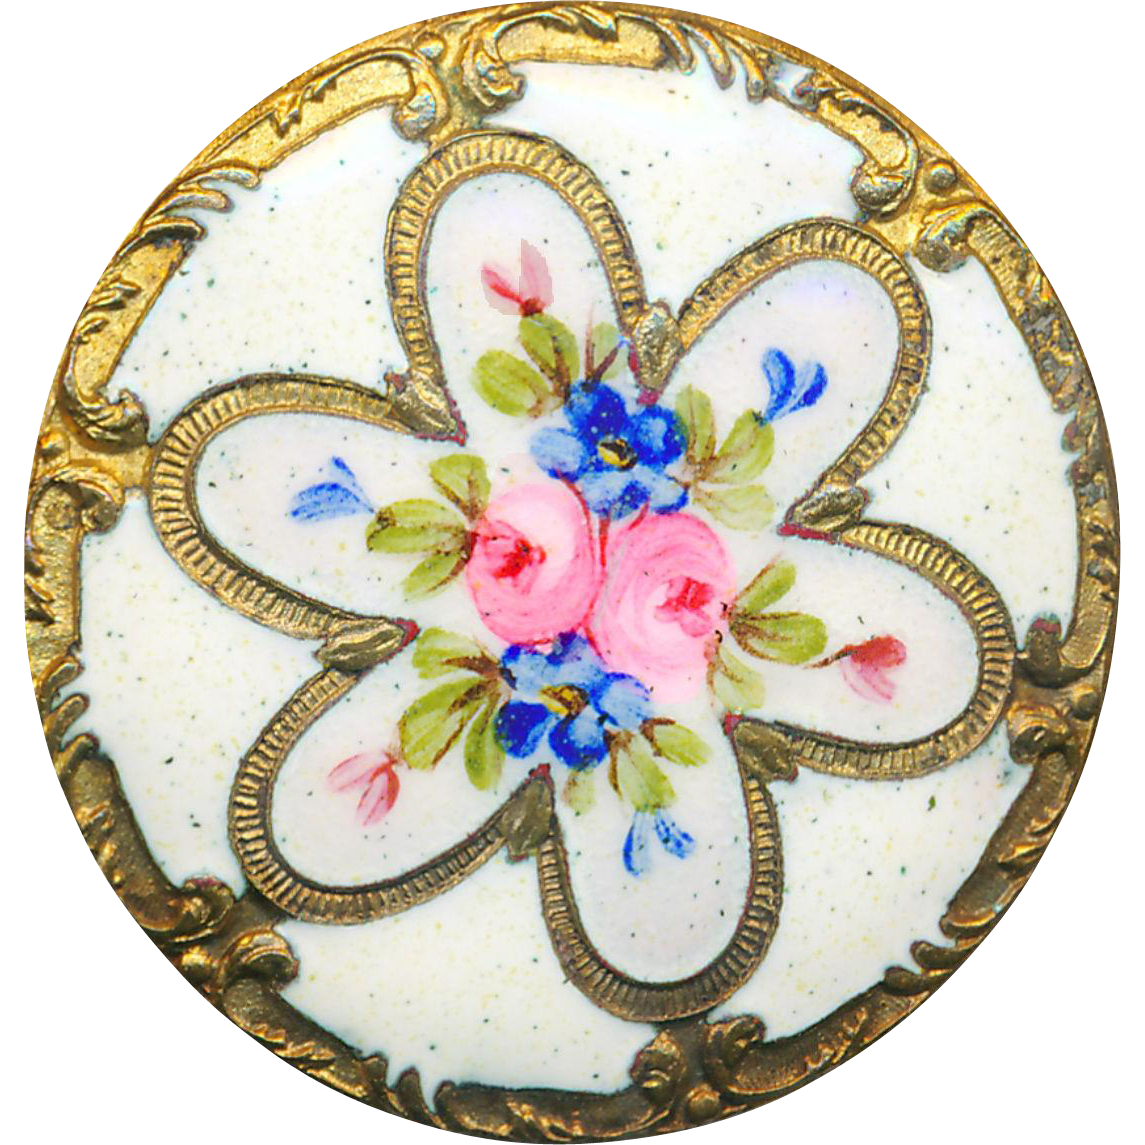 Button--Large Elegant 19th C. Rosette Reserve Roses and Forget-me-nots